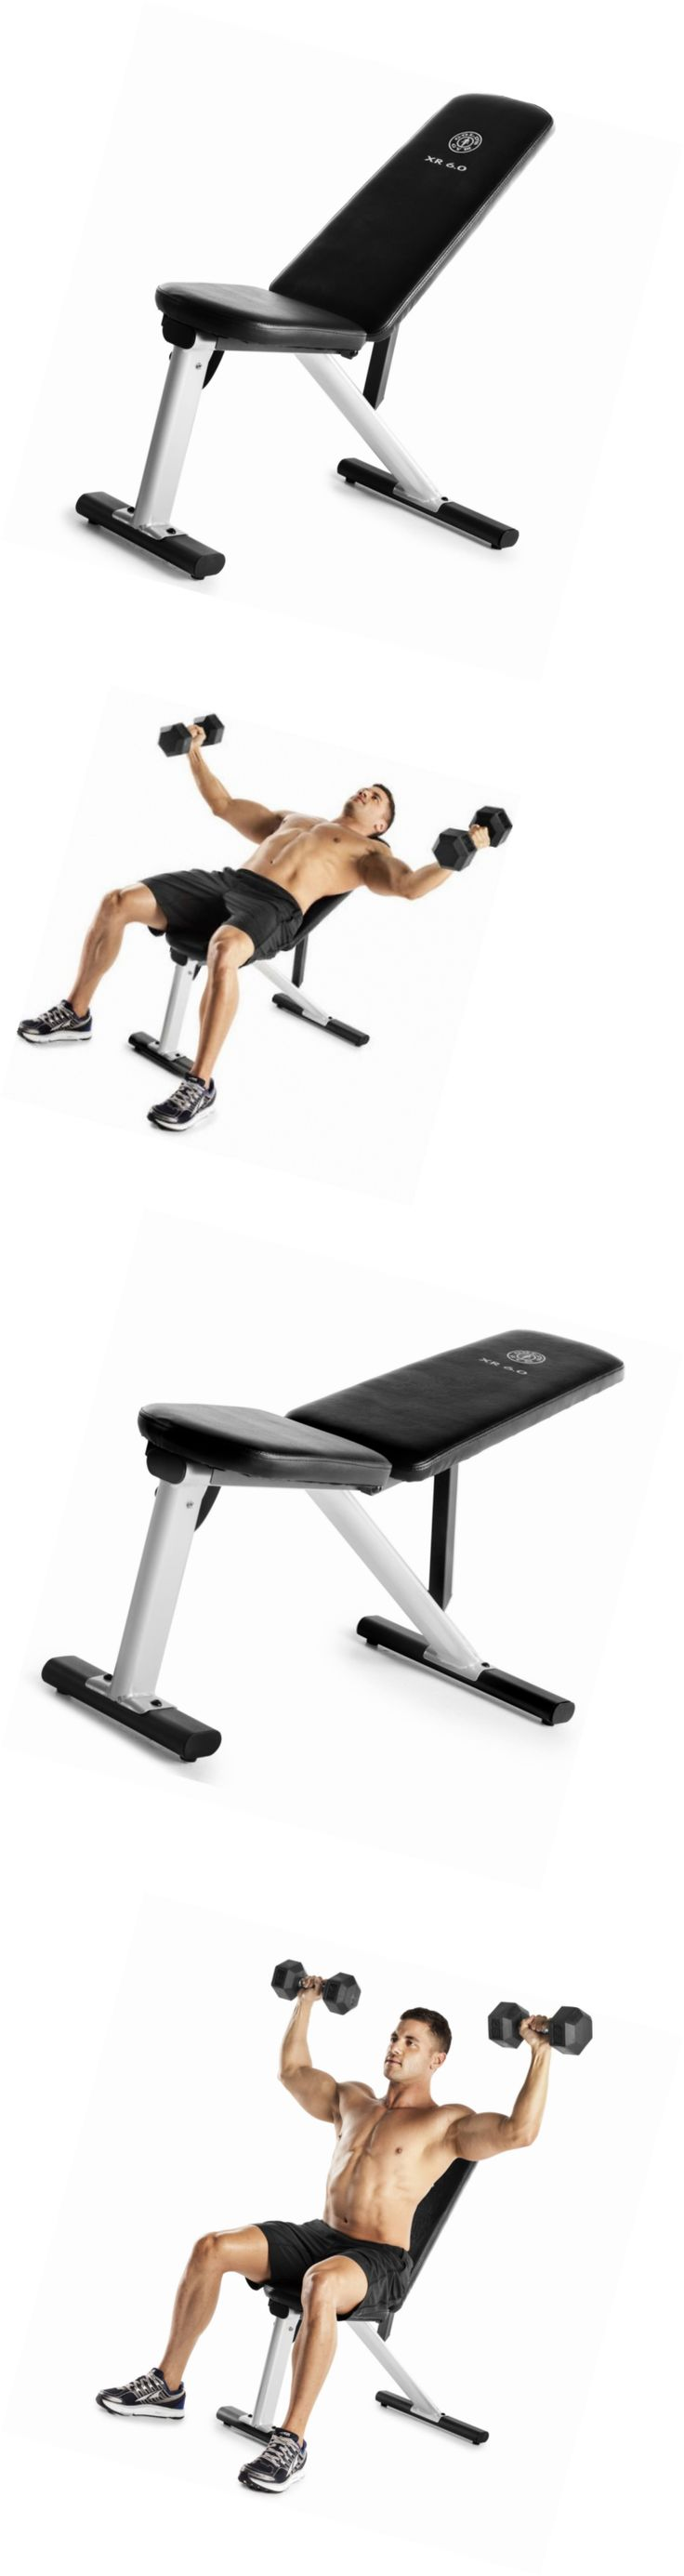 Benches 15281: Gold S Gym Xr 6.0 Adjustable Weight Bench -> BUY IT NOW ONLY: $81.85 on eBay!